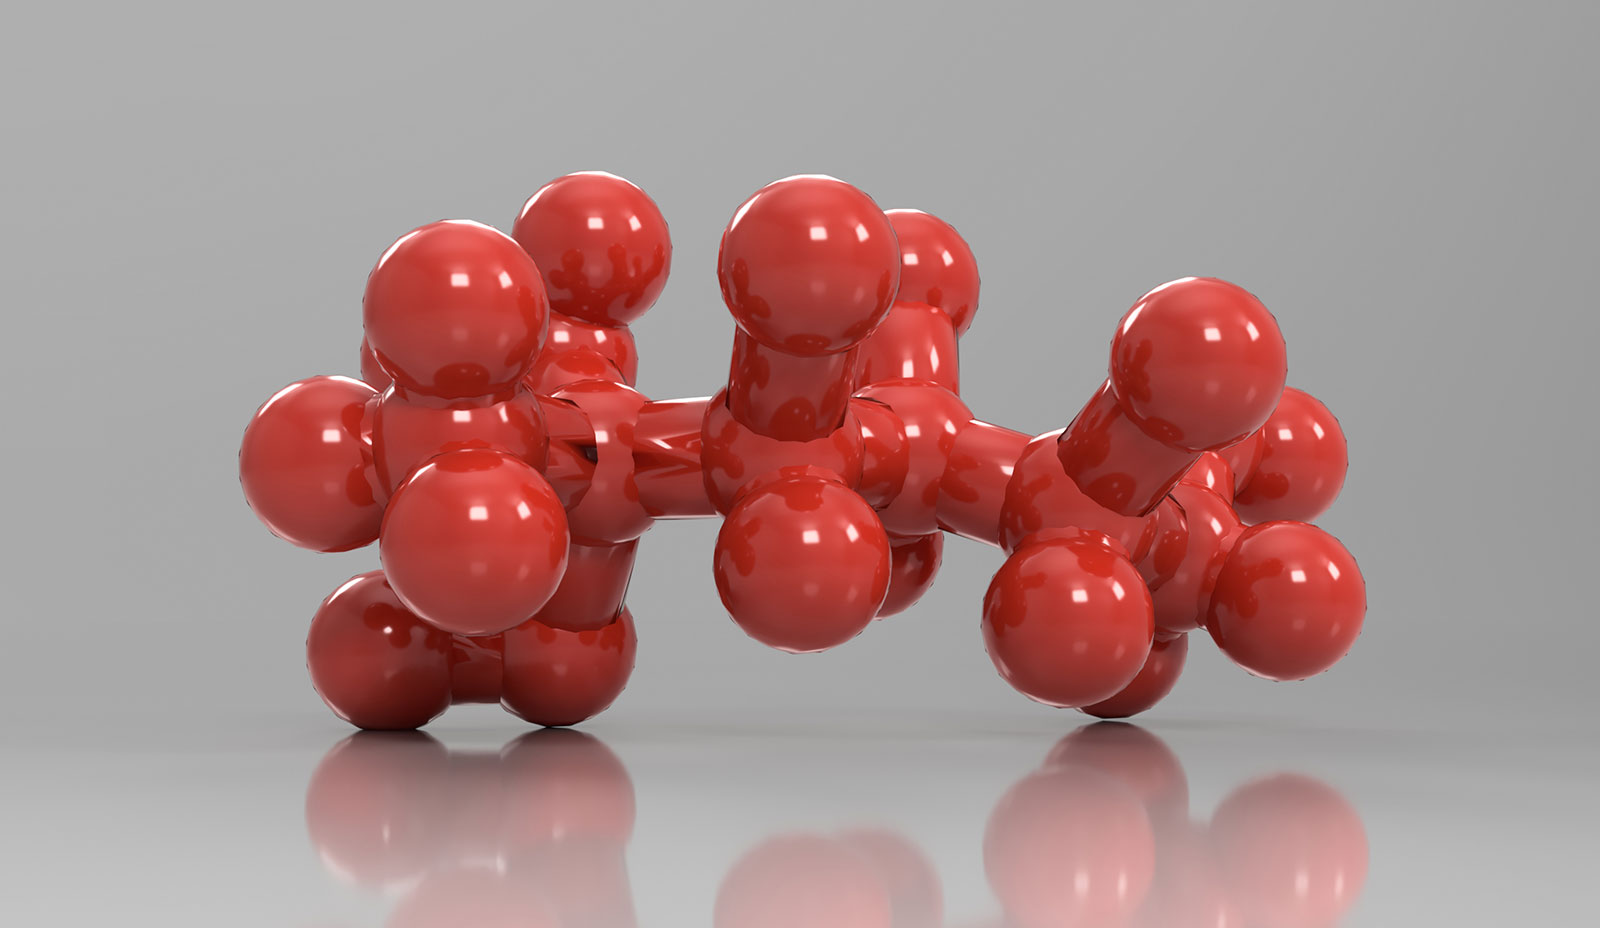 3d printing chemical structures lesson plan